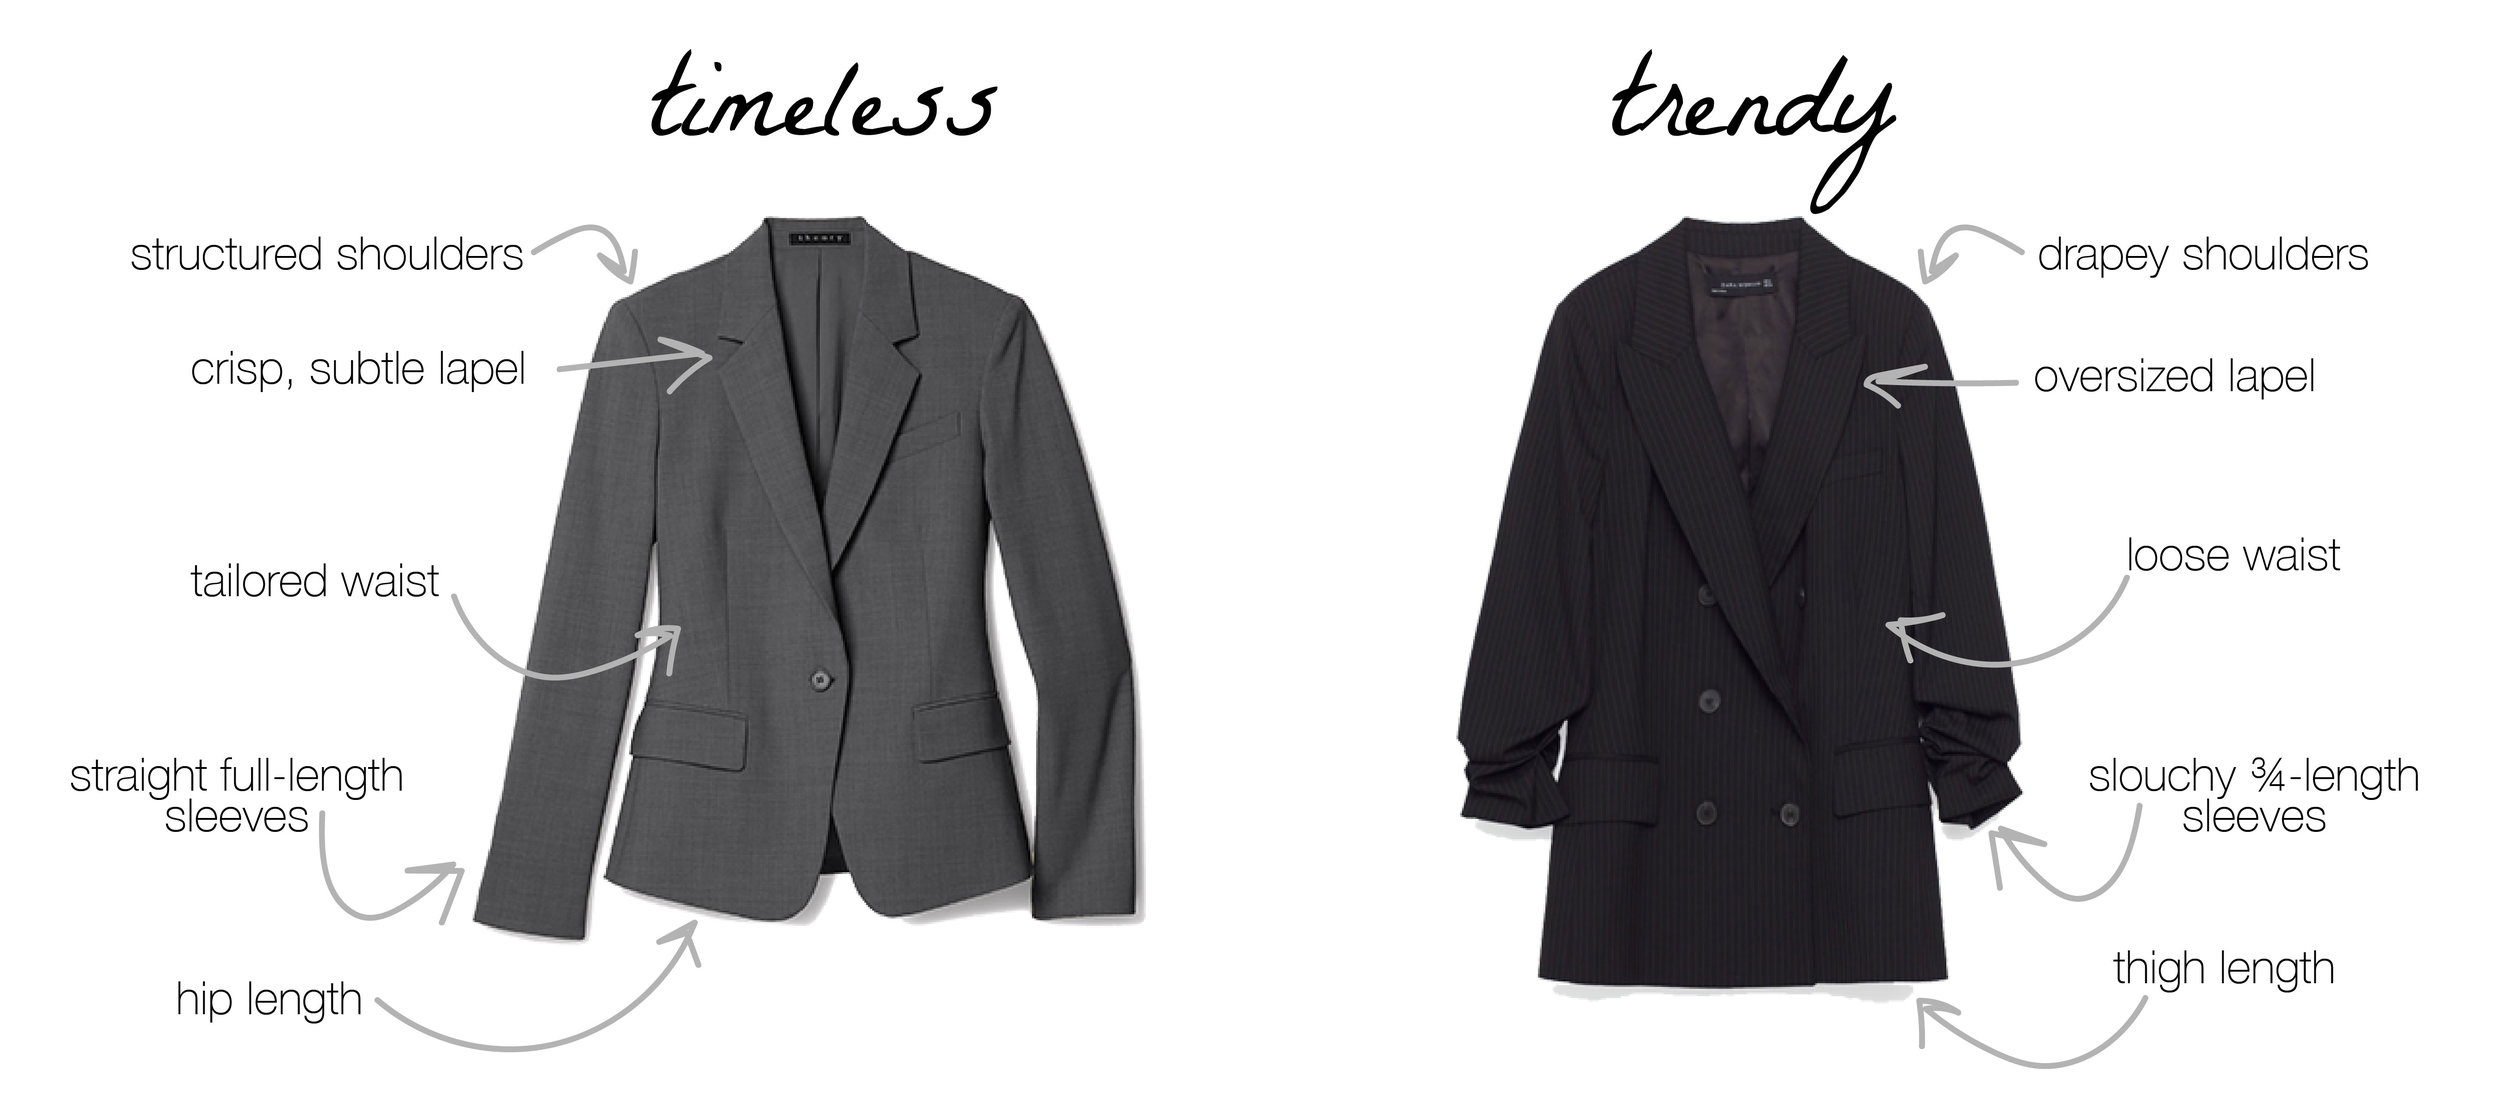 How to identify a timeless vs. a trendy silhouette.